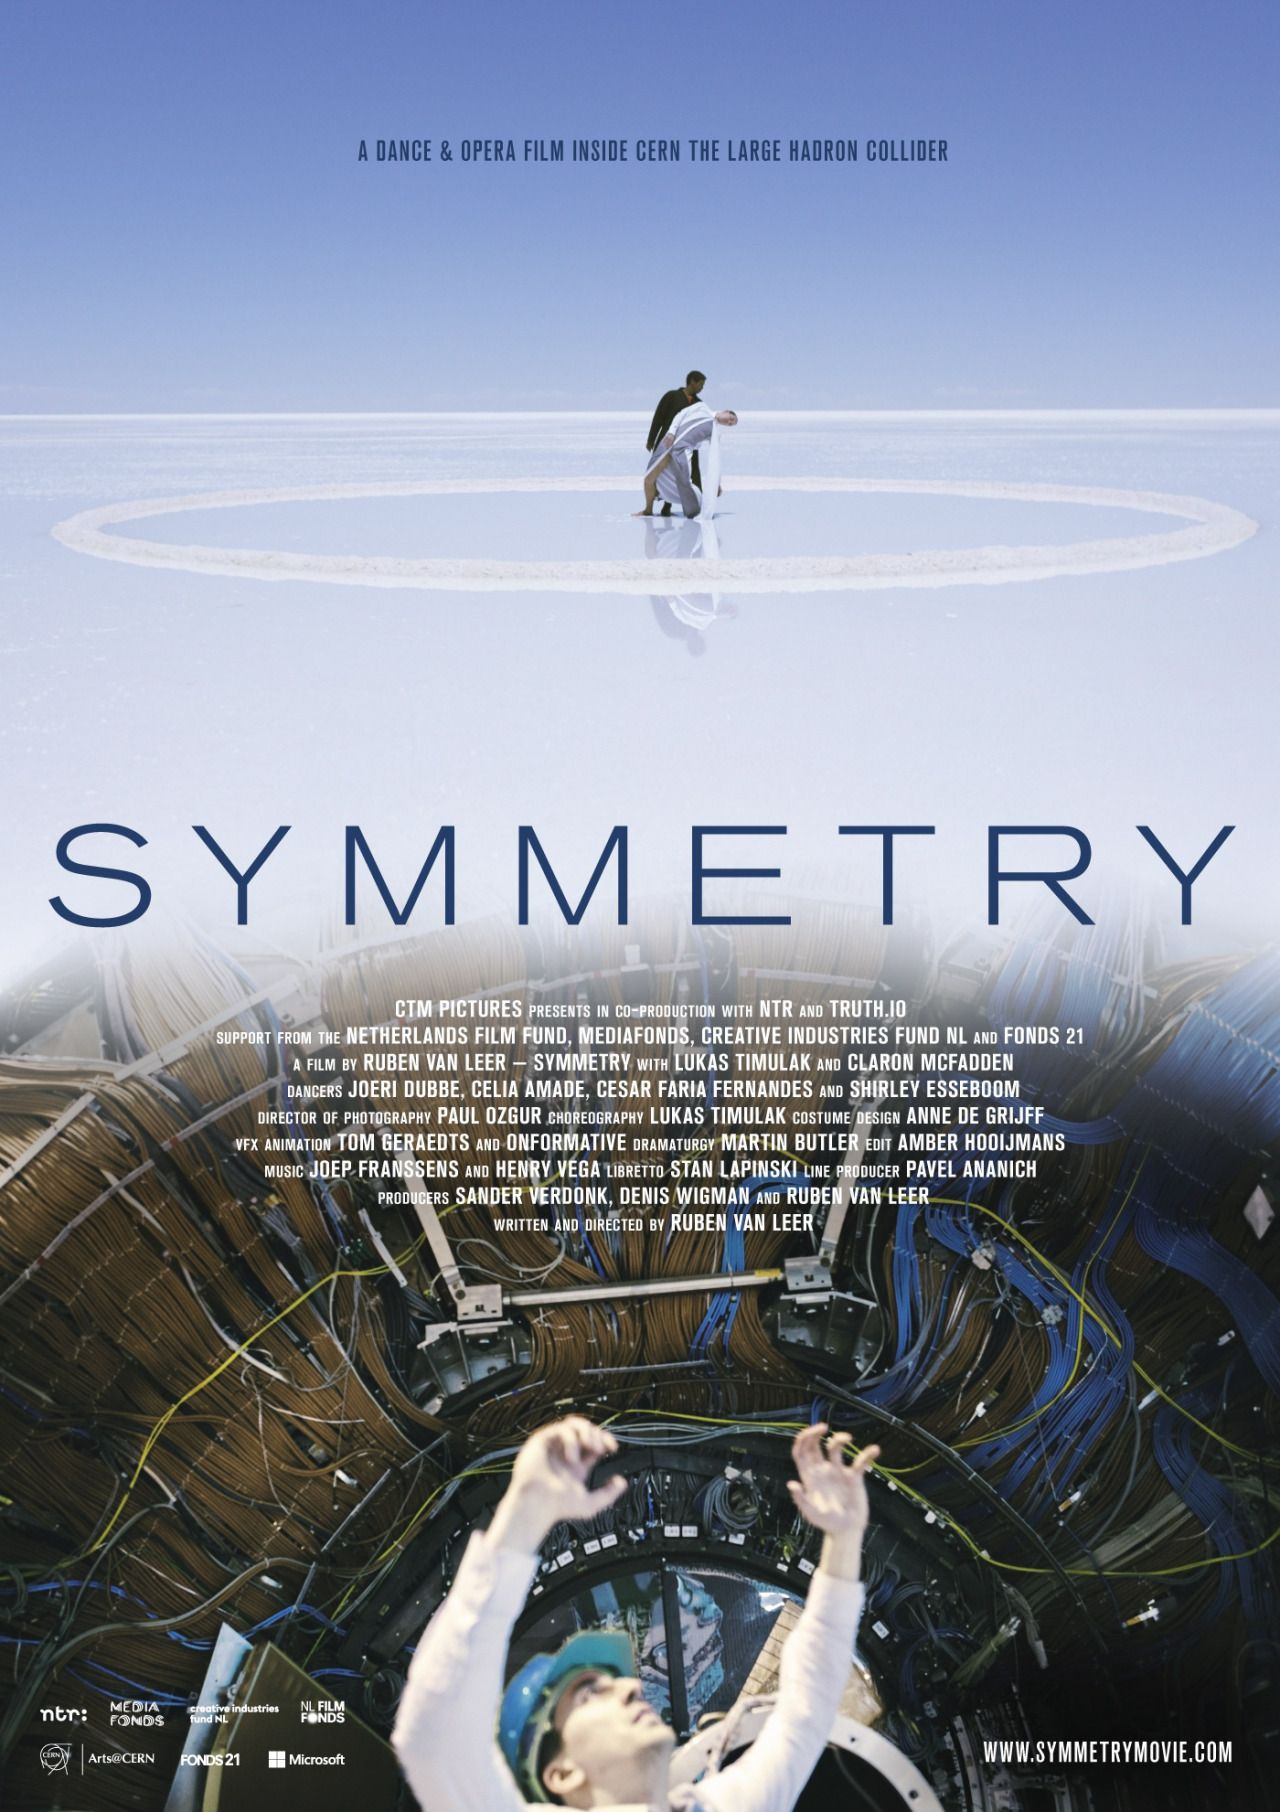 Film poster of SYMMETRY | Hadron Collider conCERN | Large hadron